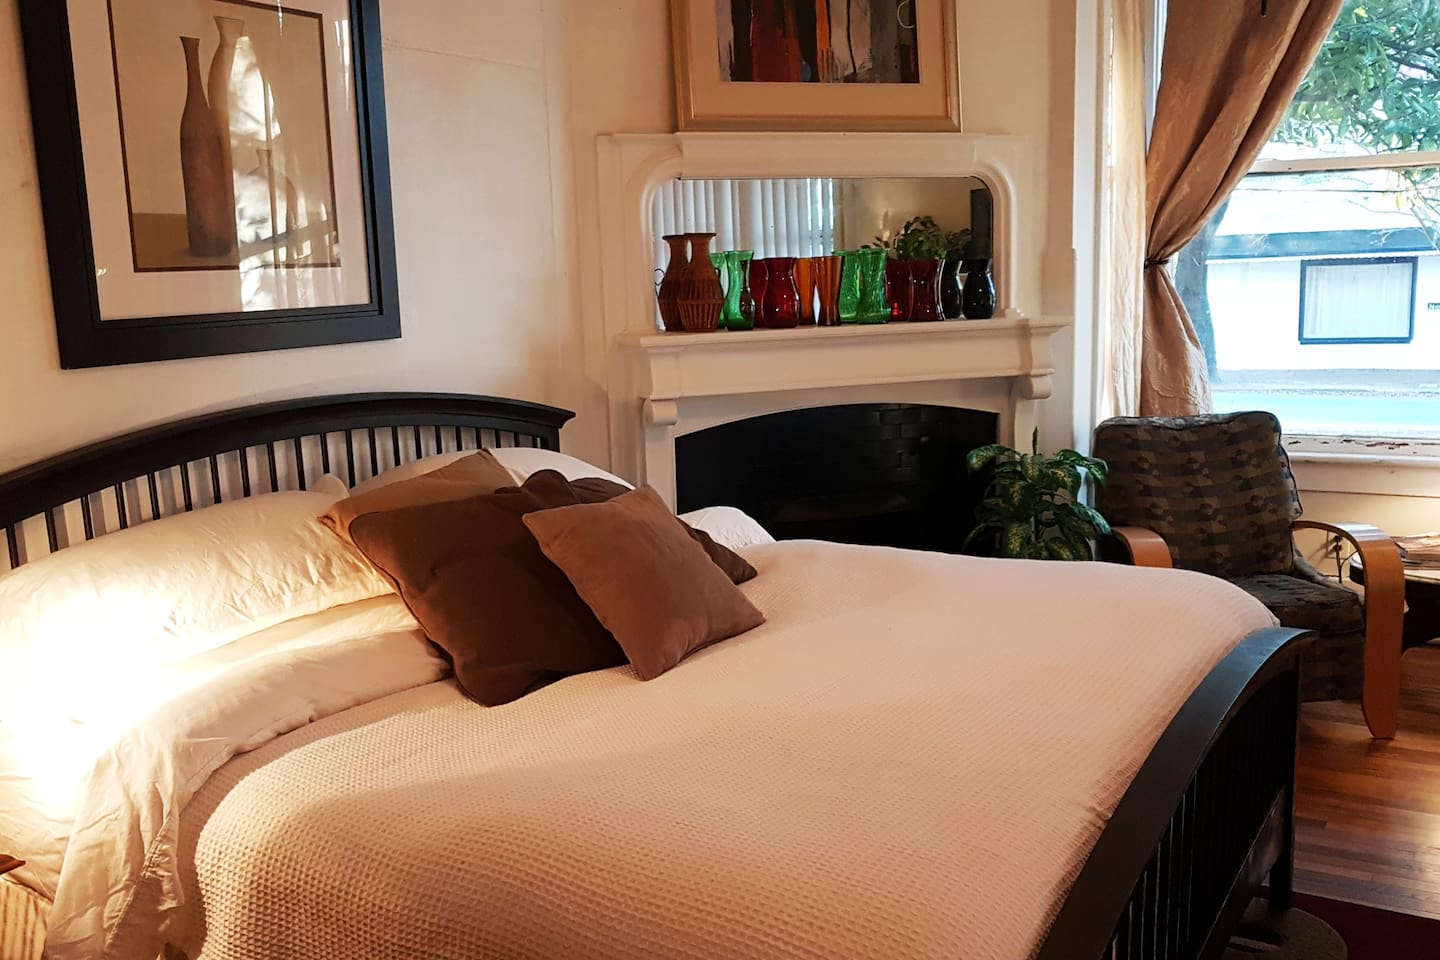 A beautiful, comfortable sleep in a large King Size bed!